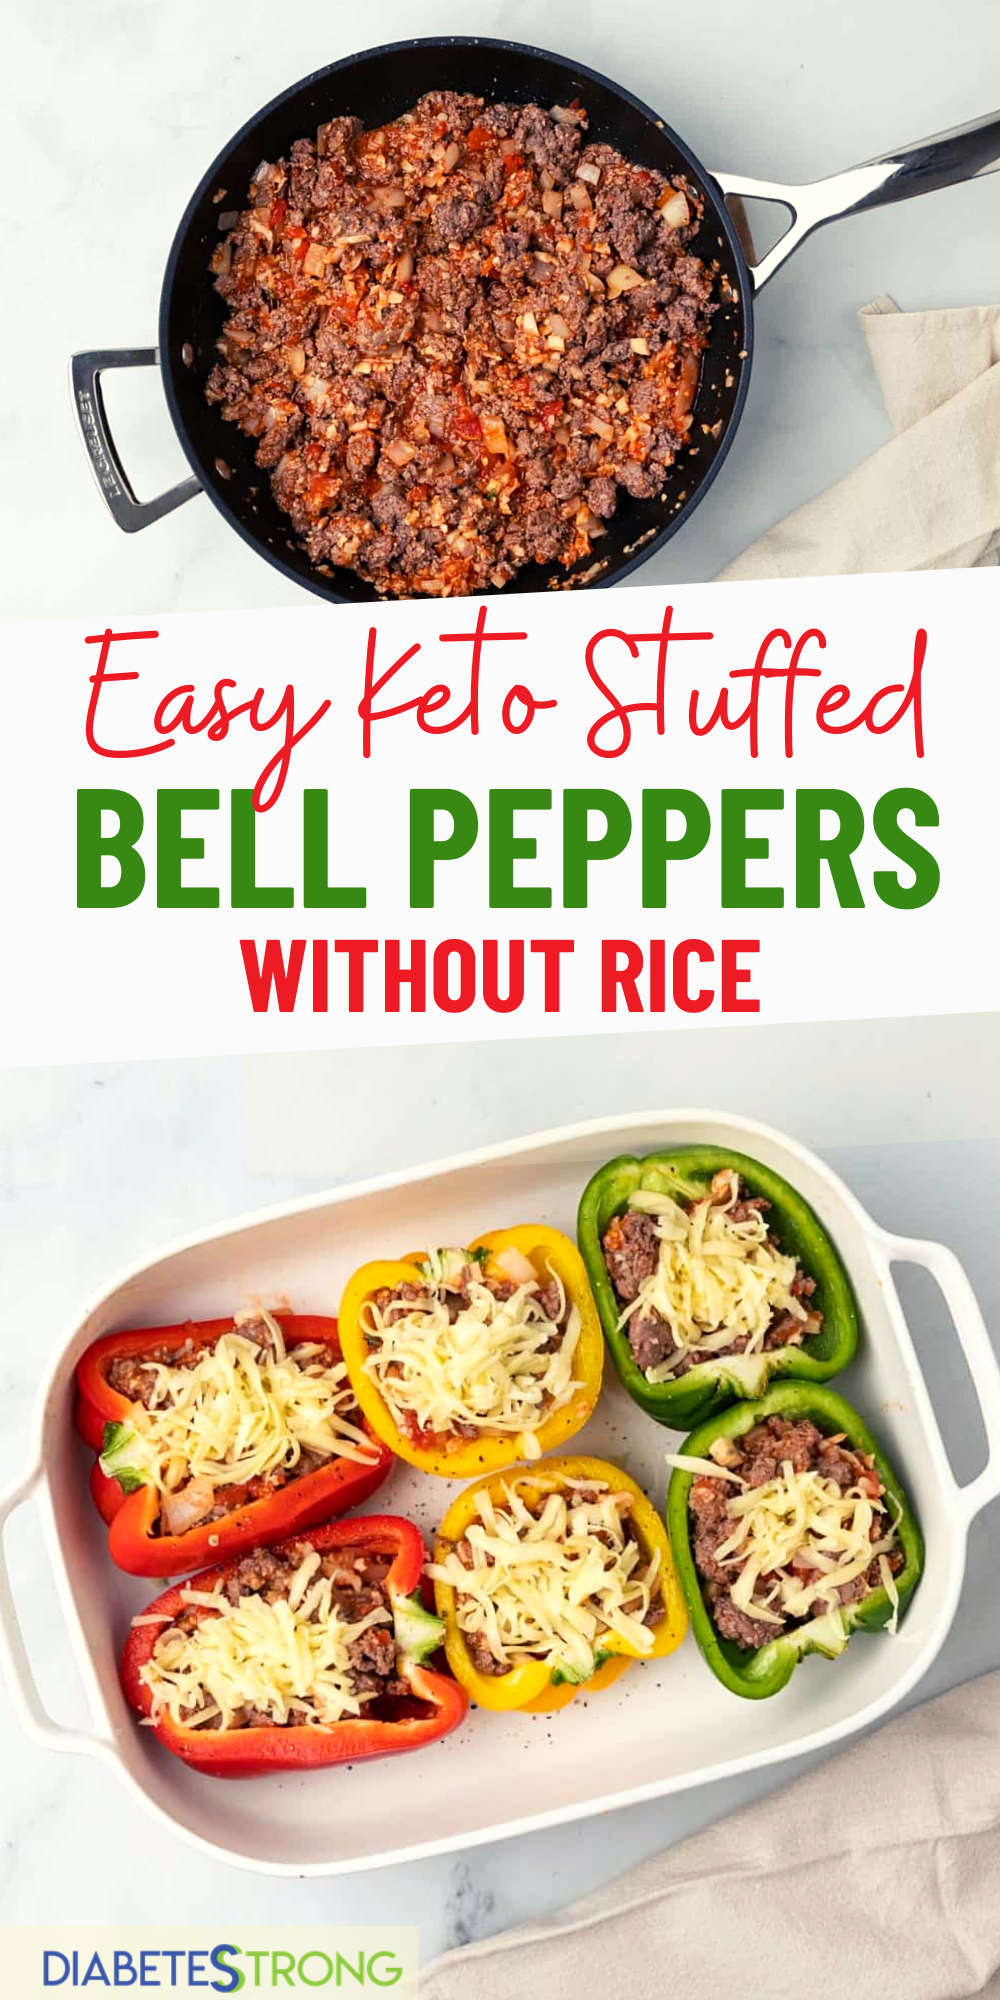 Stuffed Peppers Without Rice Recipe Diabetes Strong Recipe In 2020 Easy Family Meals Stuffed Peppers Healthy Low Carb Dinners